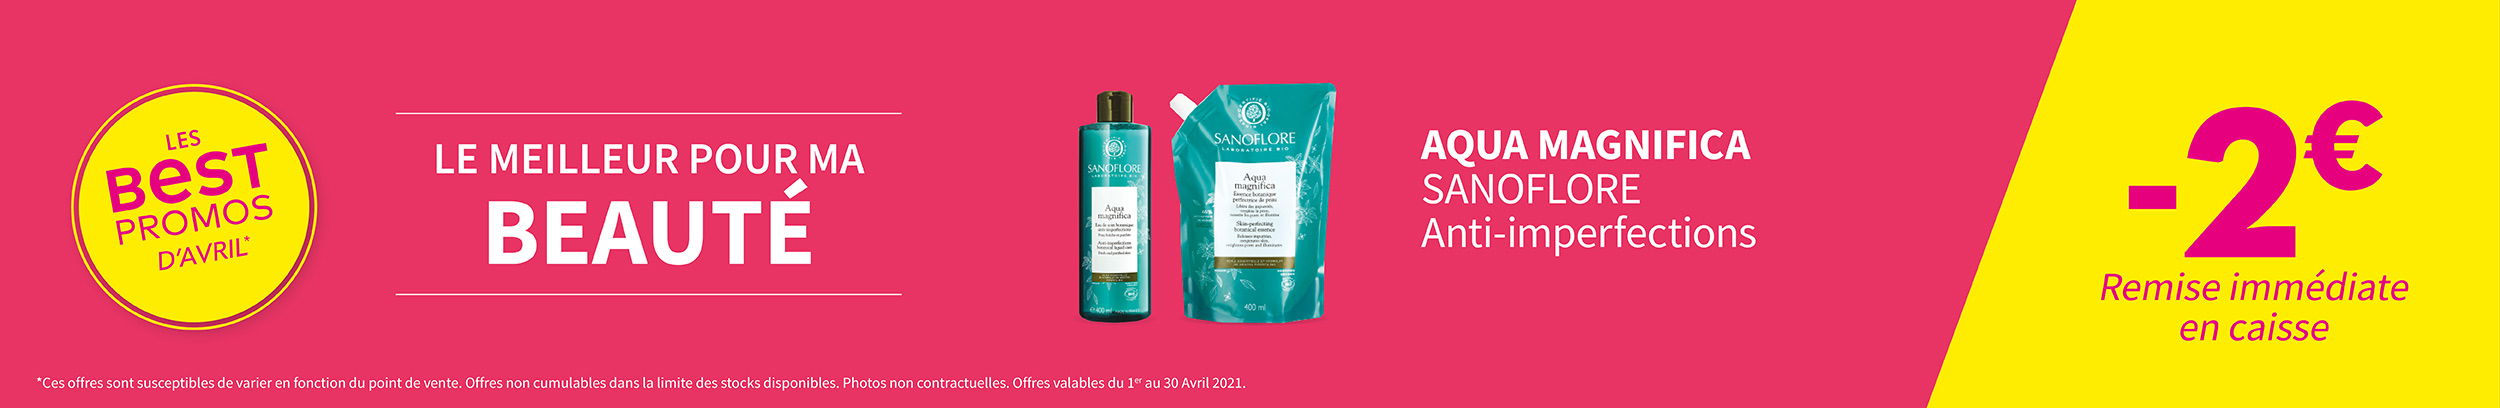 AQUA MAGNIFICA - SANOFLORE / Anti-imperfections